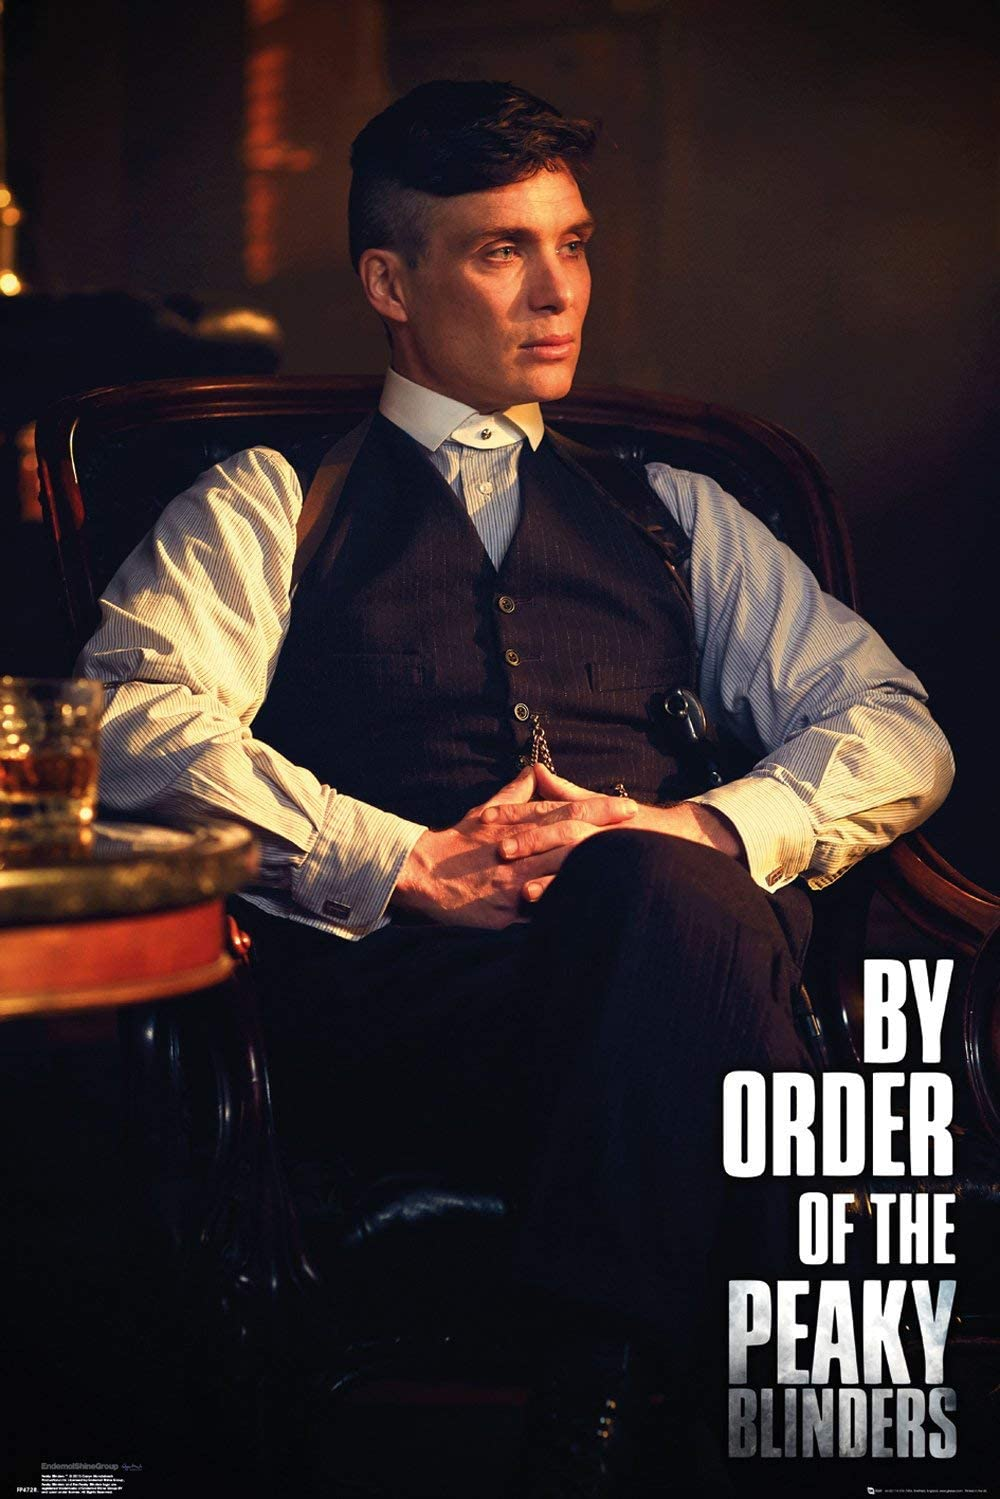 PEAKY BLINDERS TOMMY SHELBY 91.5 X 61CM  POSTER NEW OFFICIAL MERCHANDISE